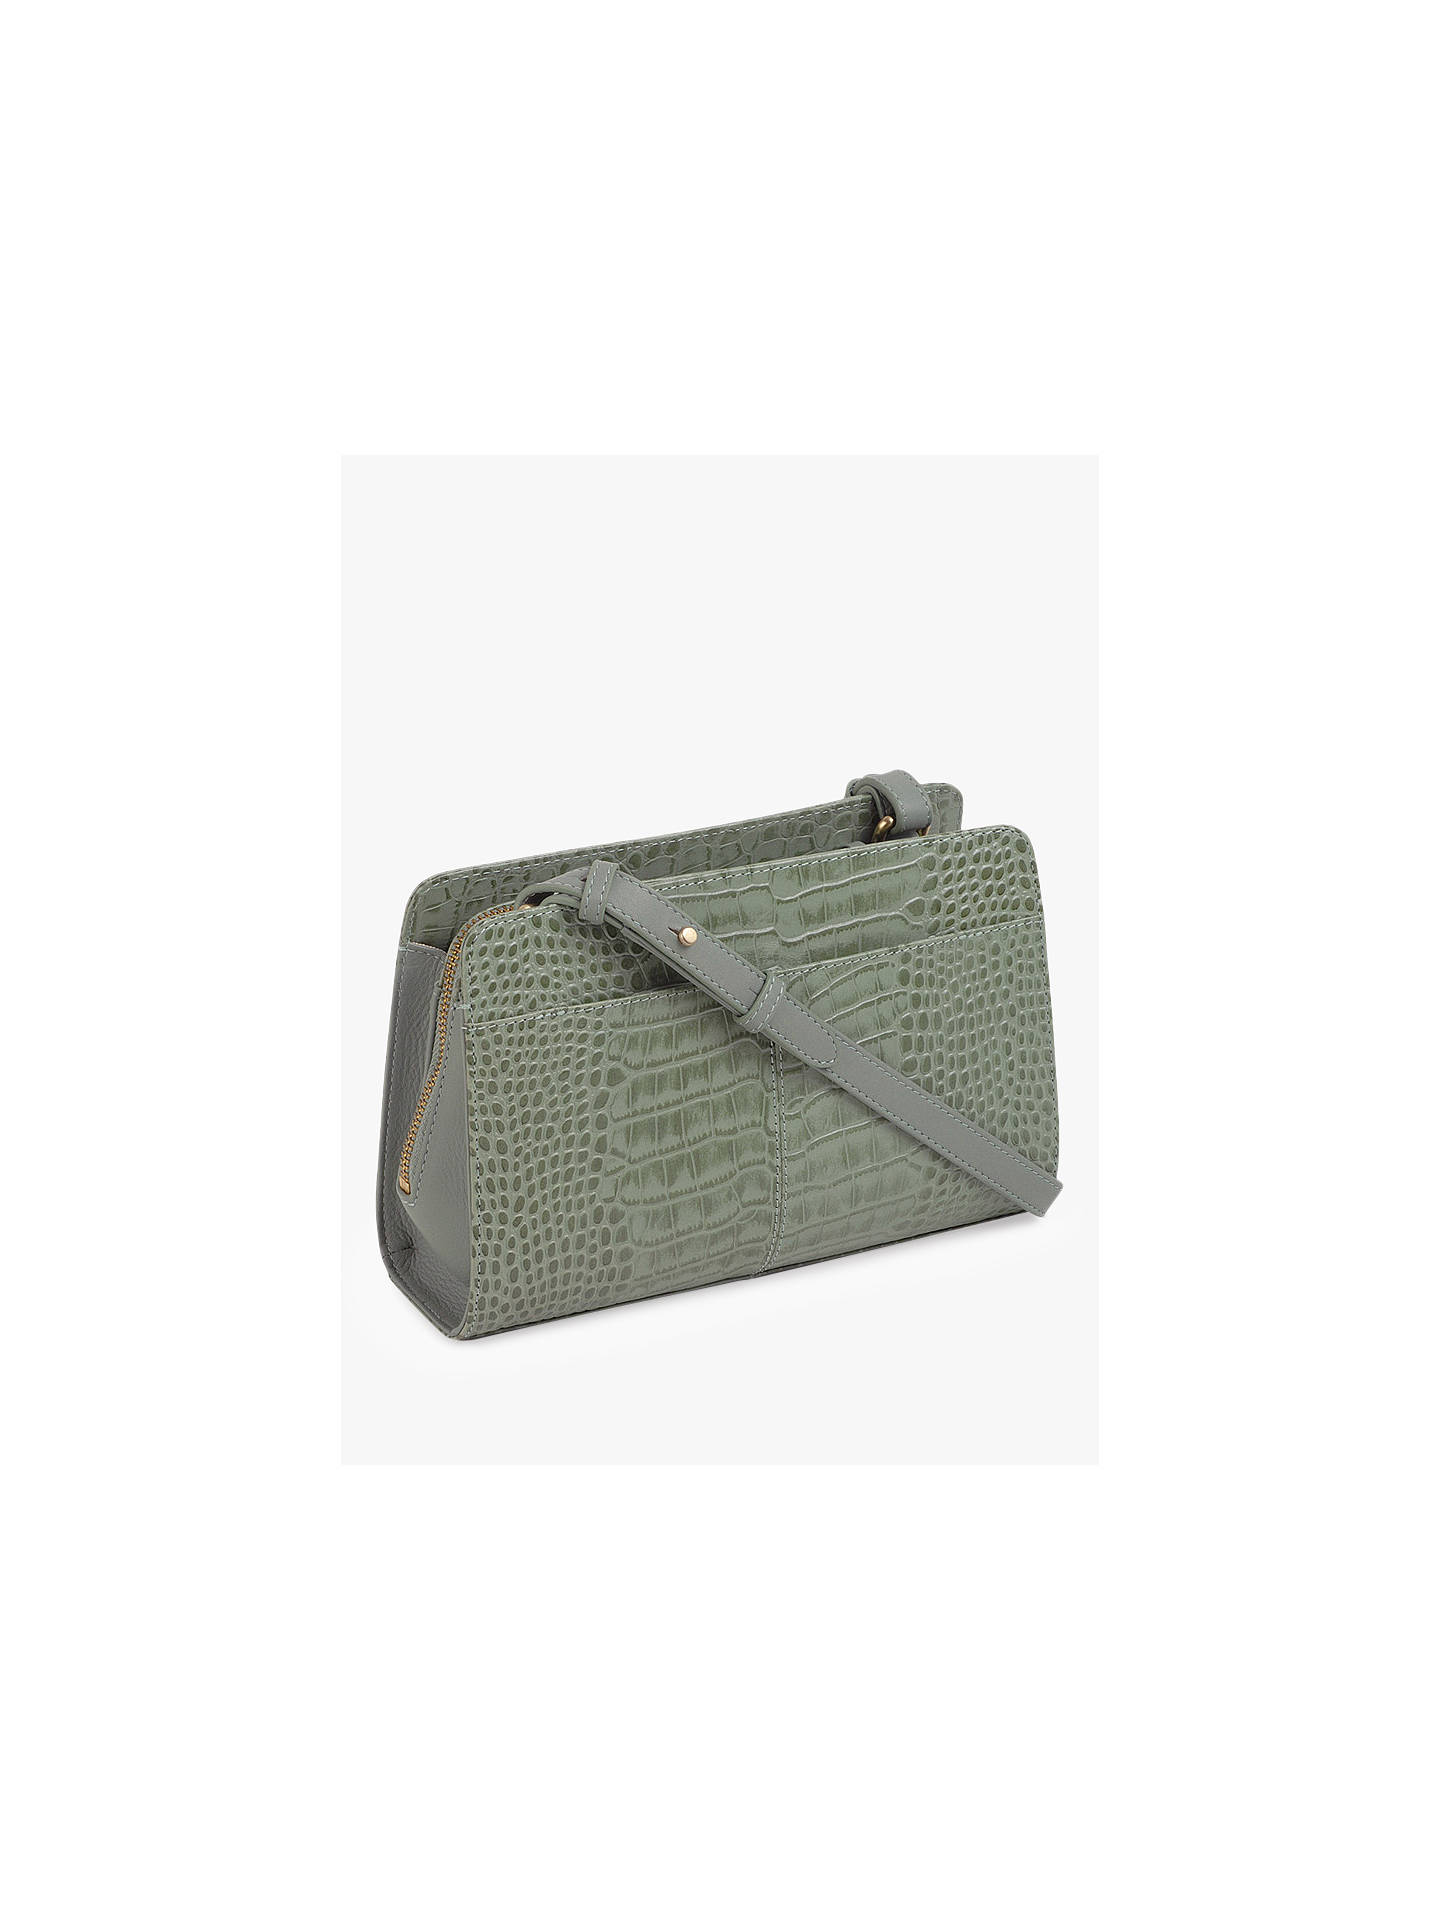 BuyRadley Liverpool Street Leather Croc Effect Medium Cross Body Bag, Green Online at johnlewis.com